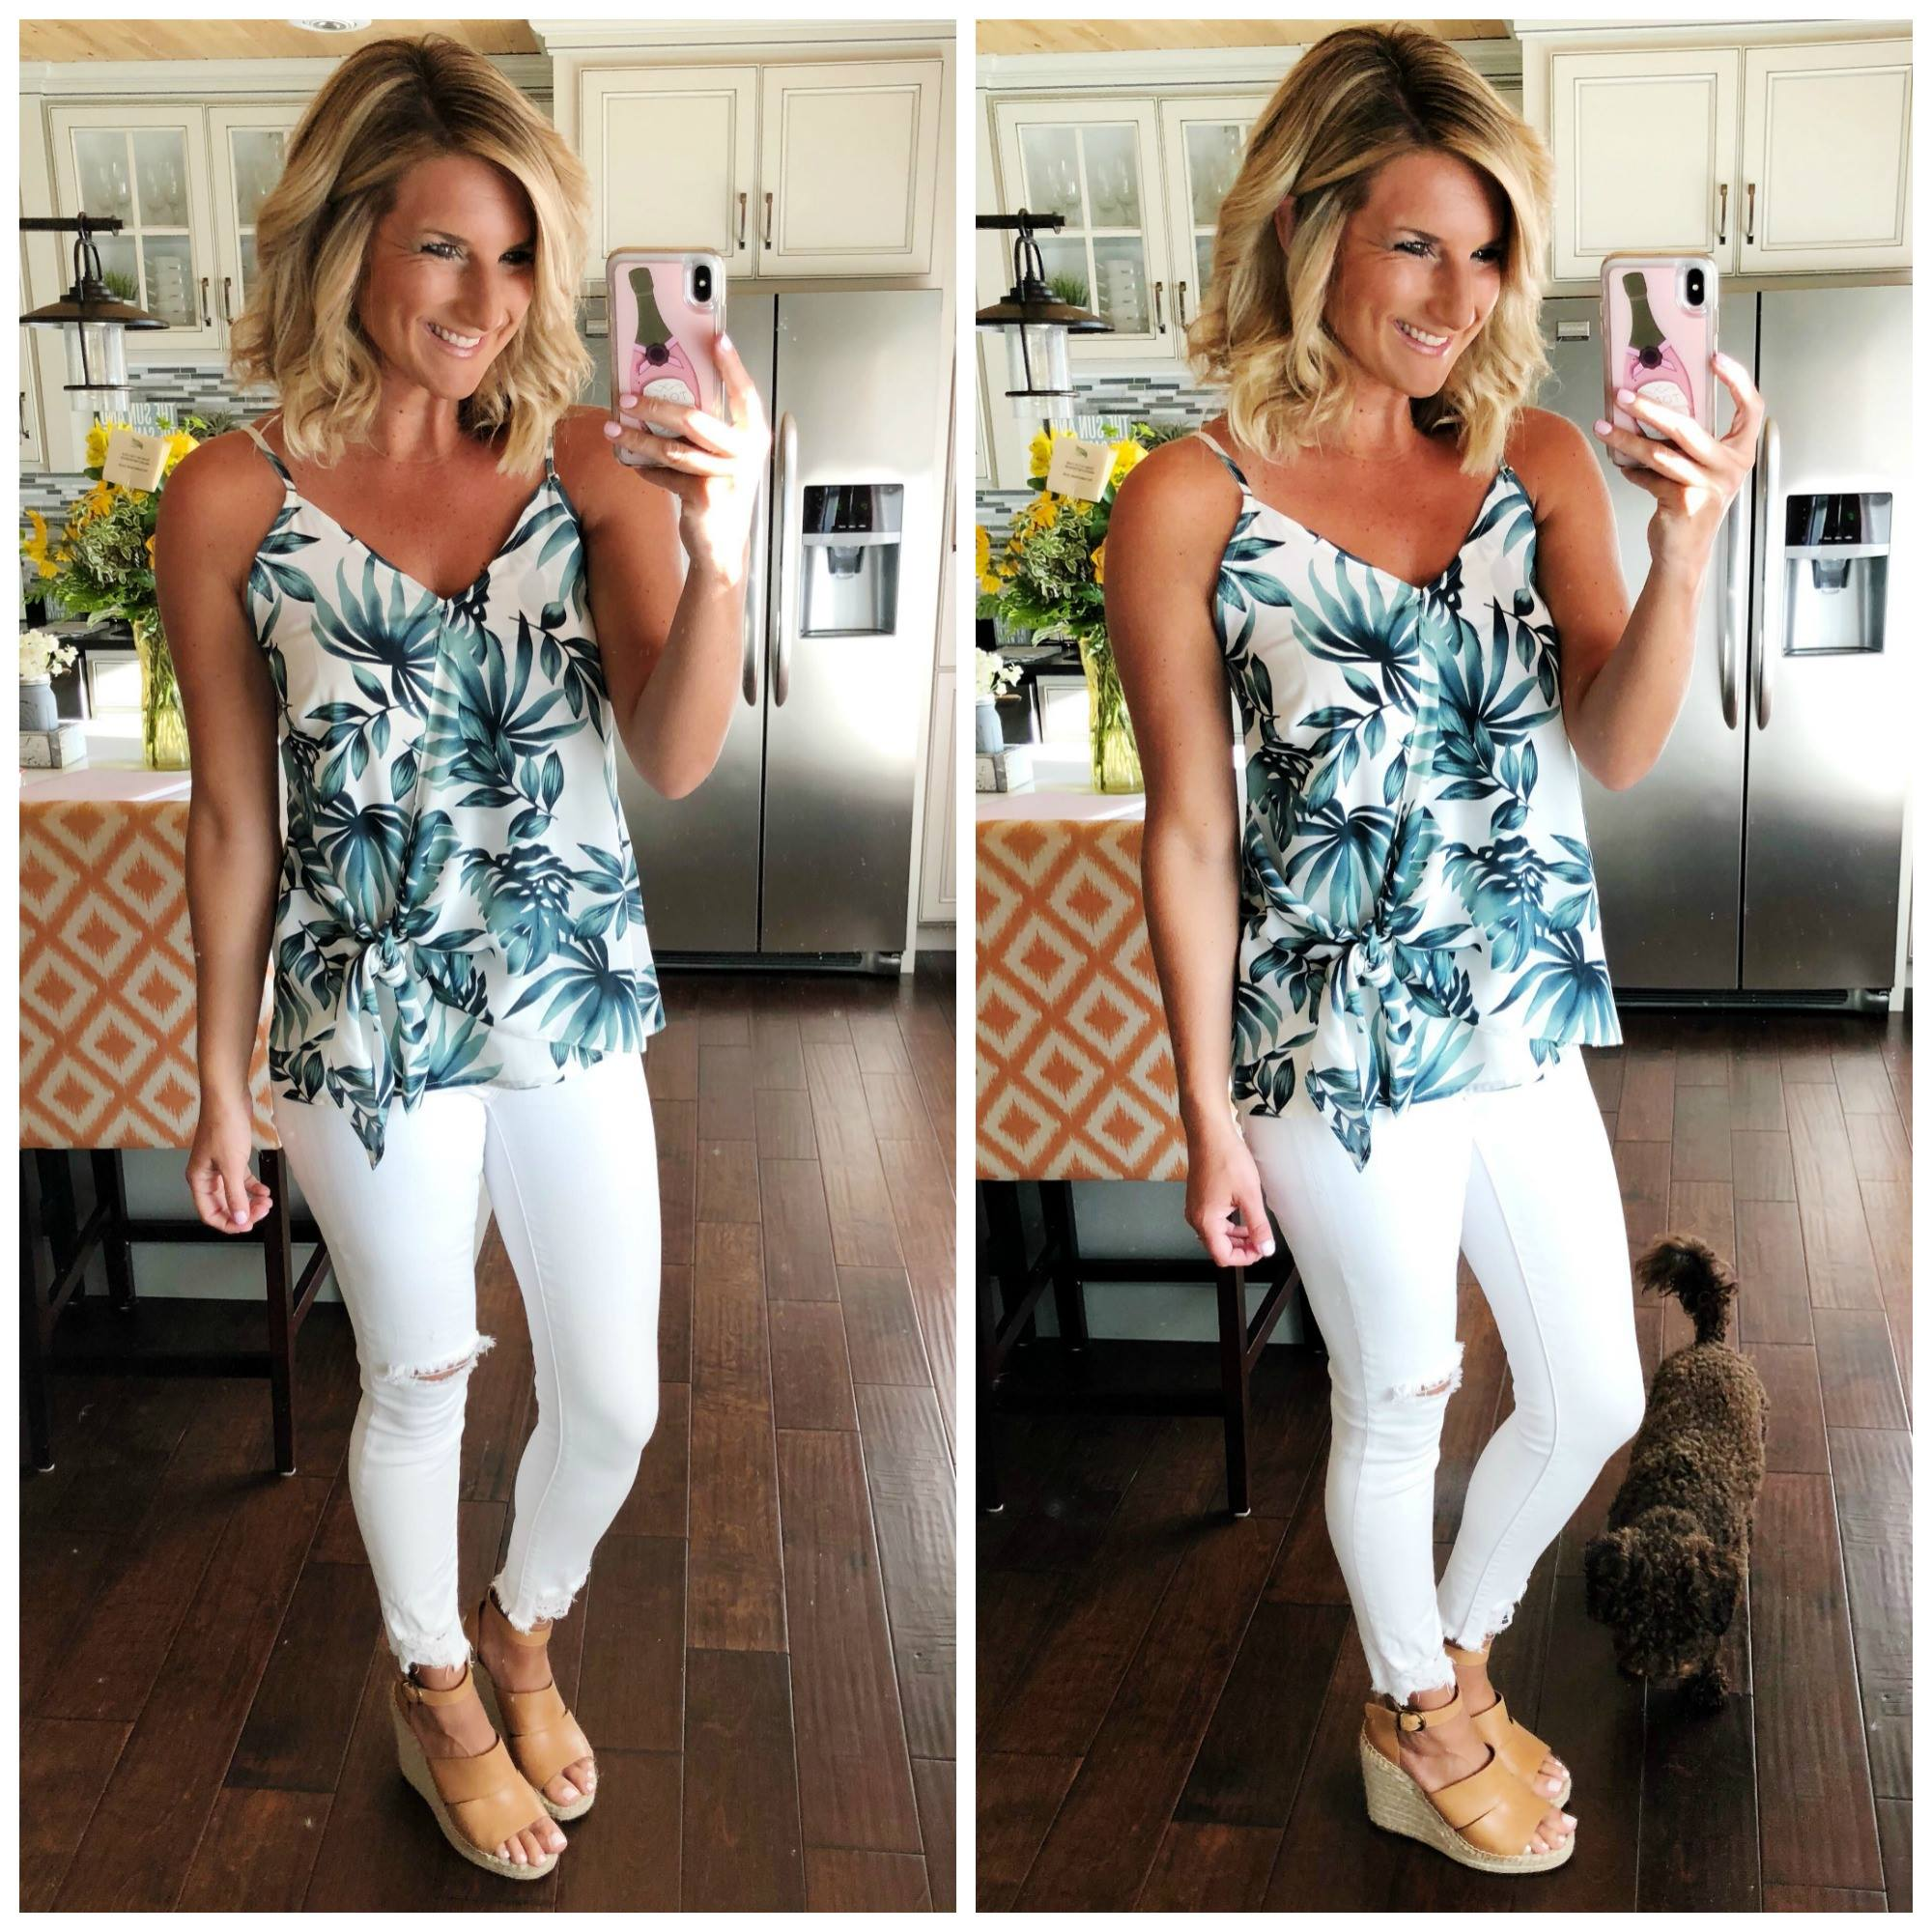 What to Wear with White Jeans in the Summer // Faux Wrap Top with White Jeans and Wedge Sandals // Palm Print Top